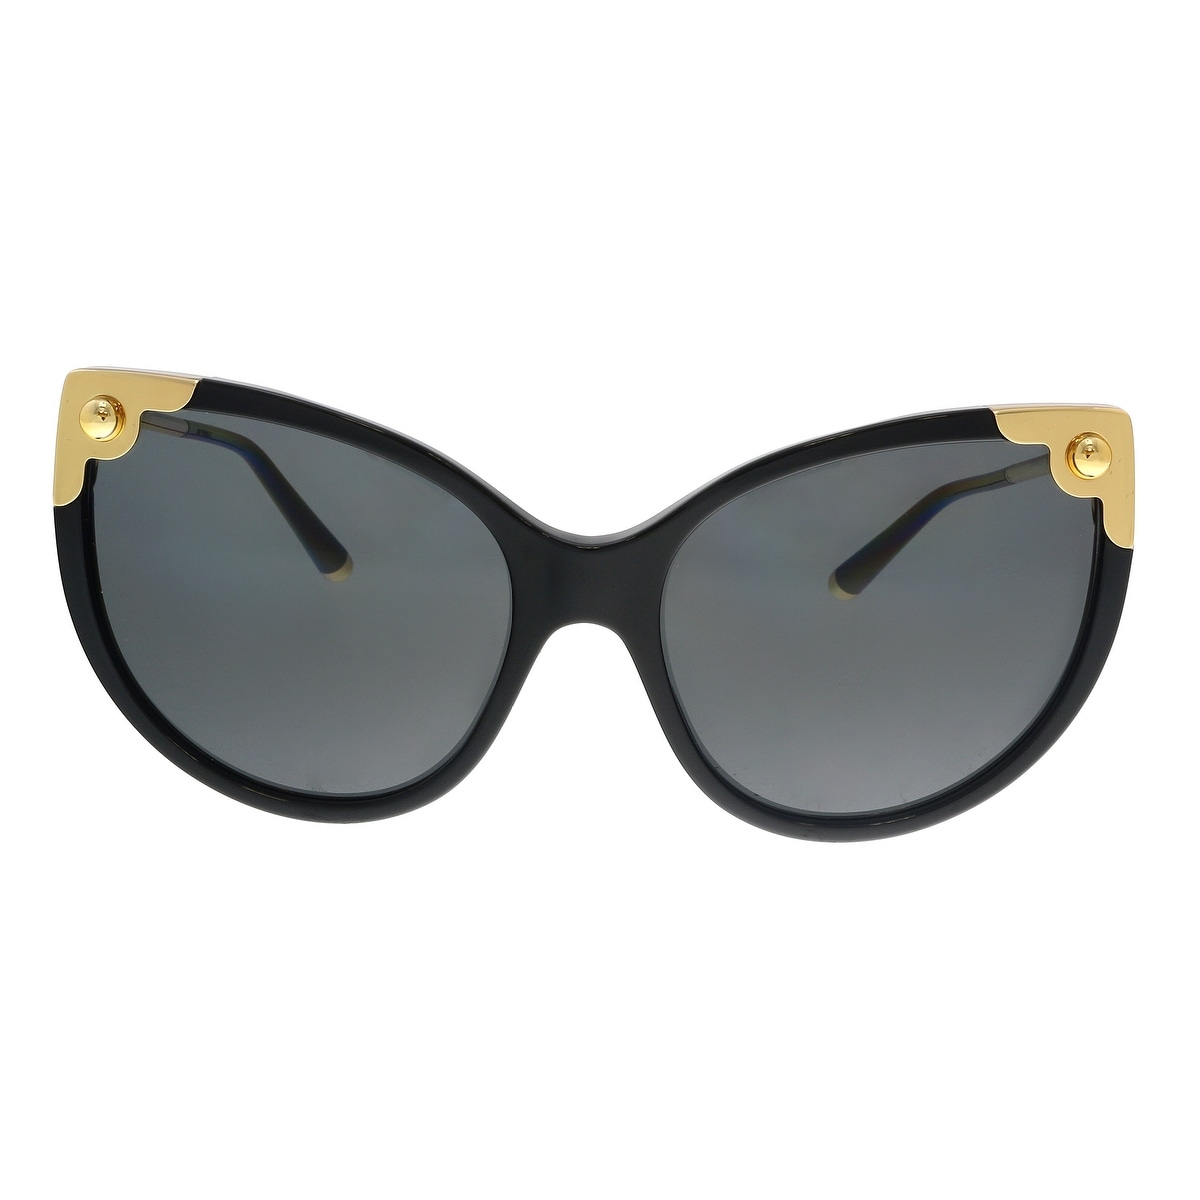 Shop Dolce   Gabbana DG4337 501 87 Black Cat Eye Sunglasses - No Size -  Free Shipping Today - Overstock.com - 23595805 12c5f3d7d18a